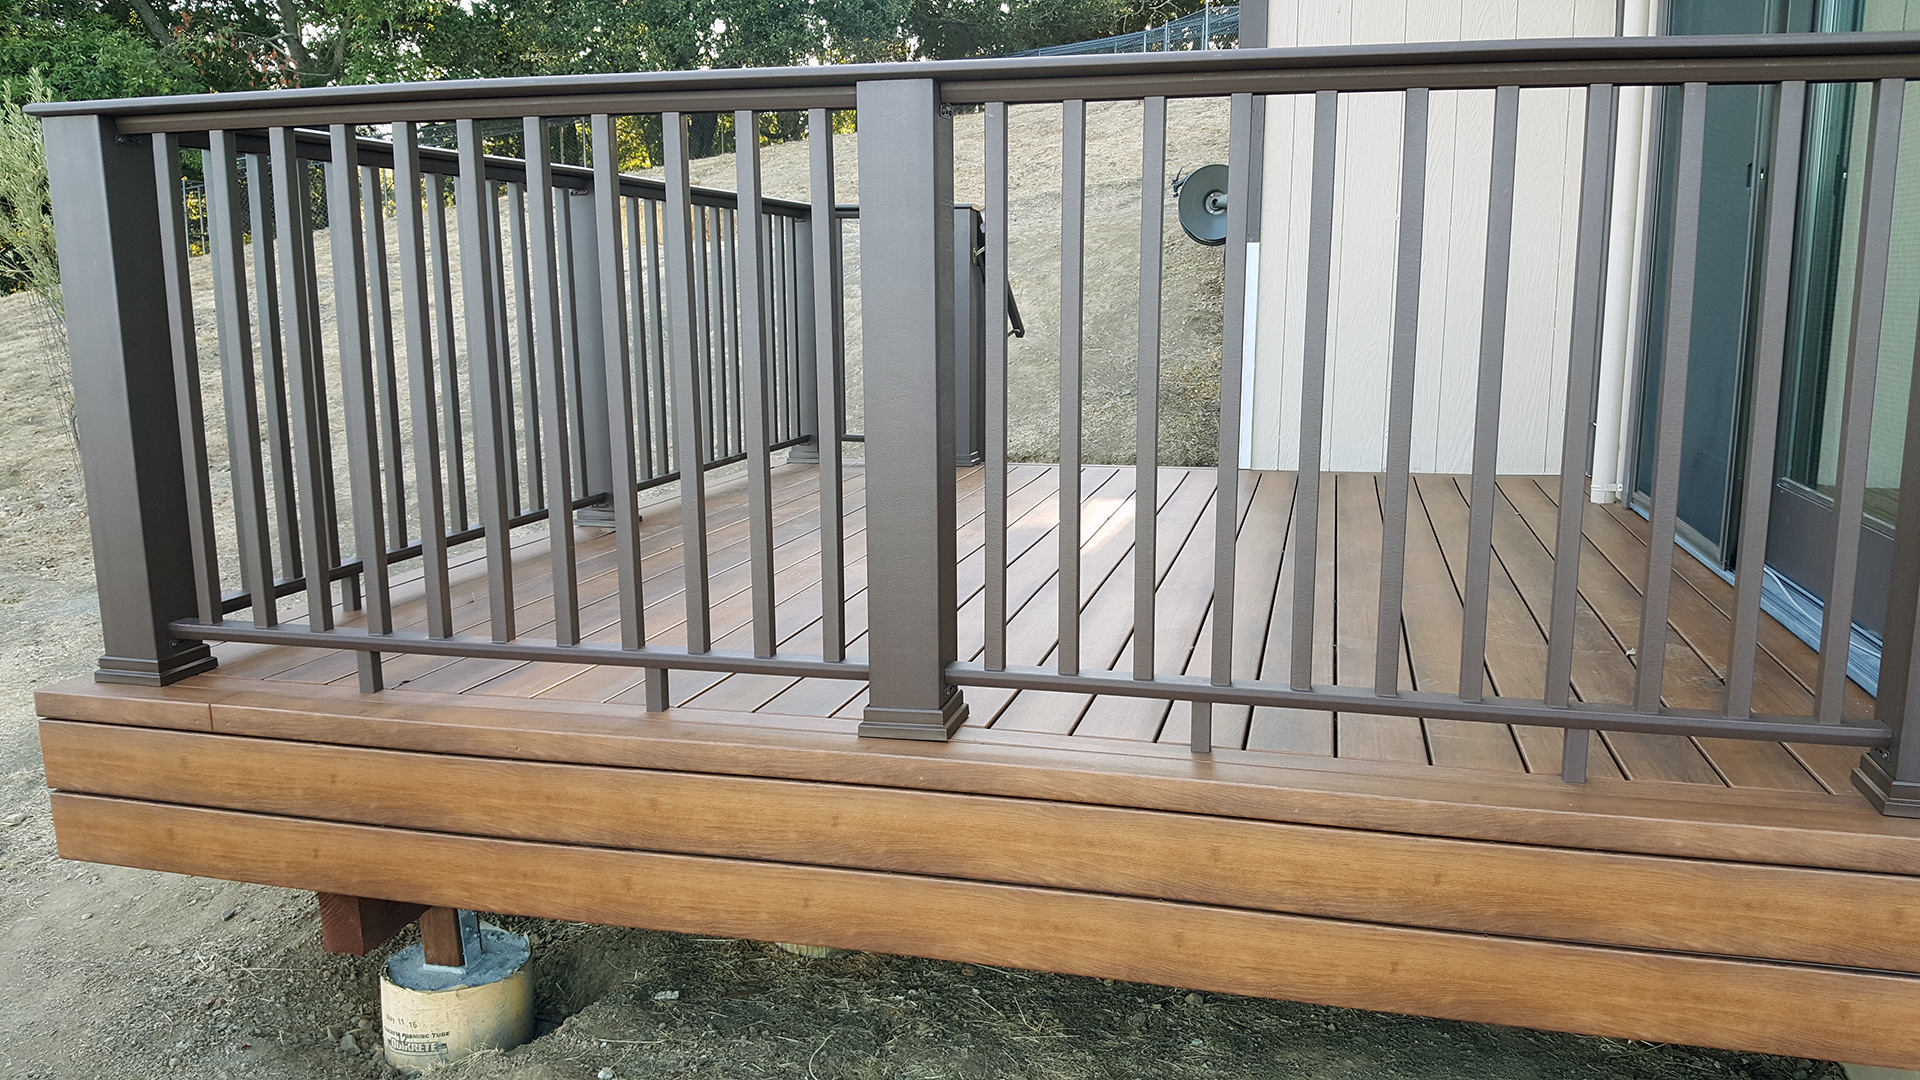 Walnut Decking Images - Reverse Search